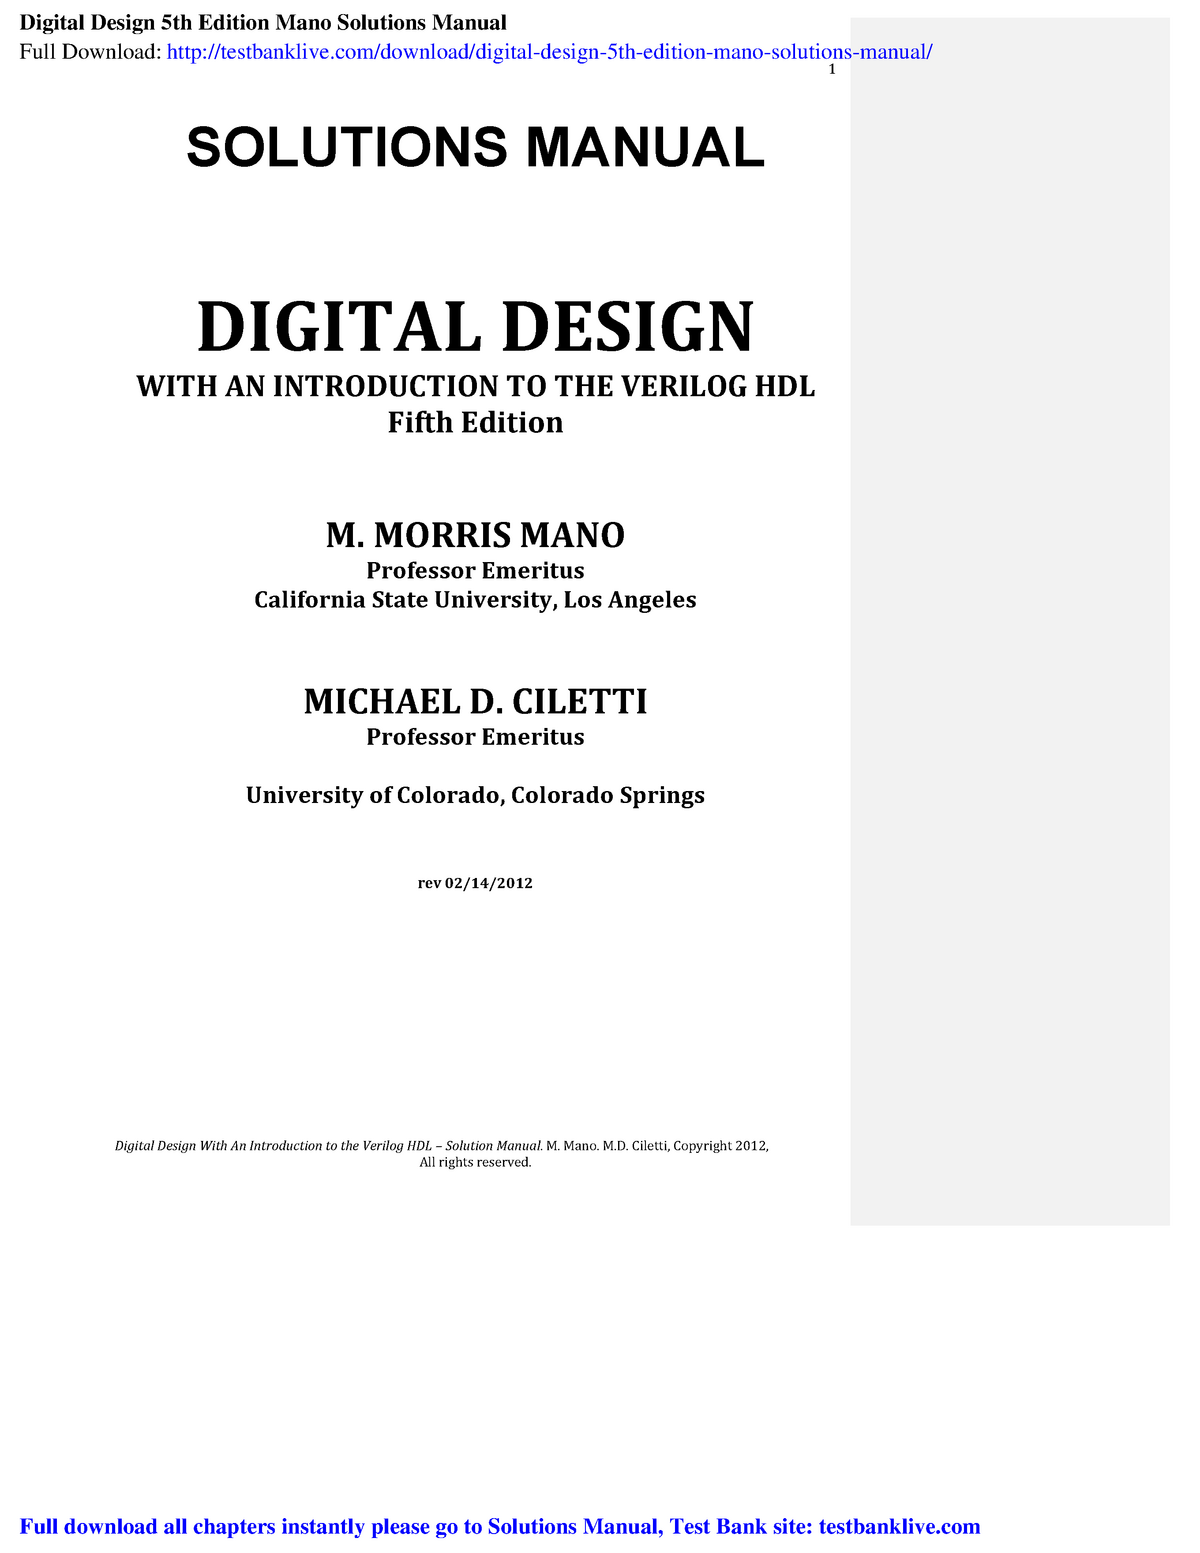 Digital Design 5th Edition Mano Solutions Manual Studocu